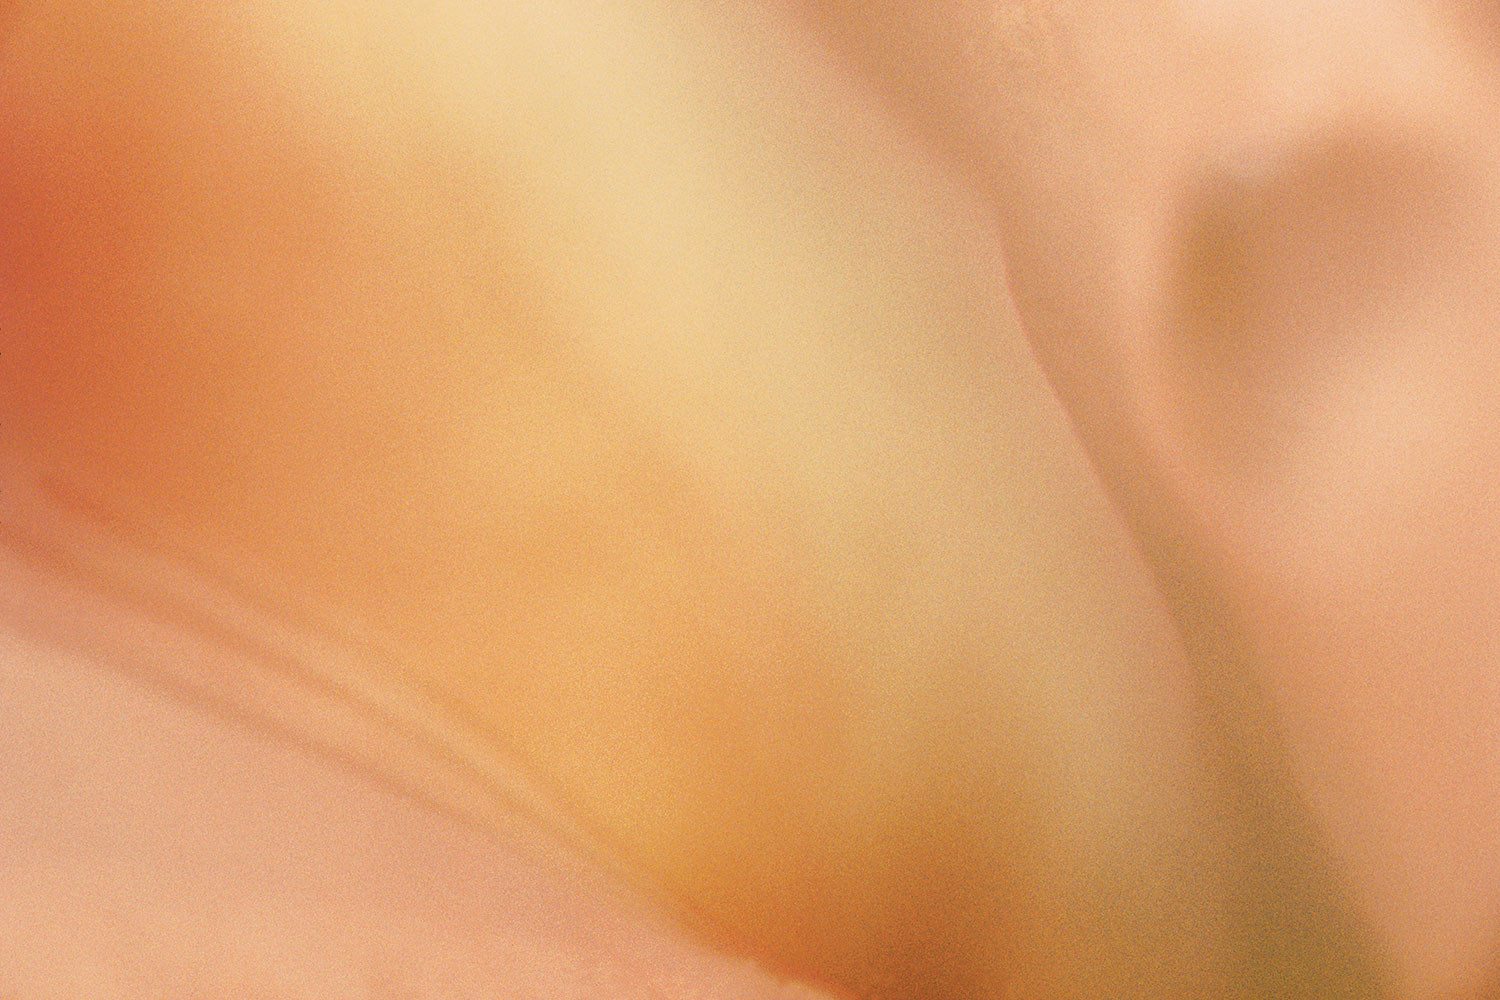 reverie:   surreal   desert    wildflower   nude    watercolor  Renaissance   terra-cotta     timeless    classical   sensual  abstract